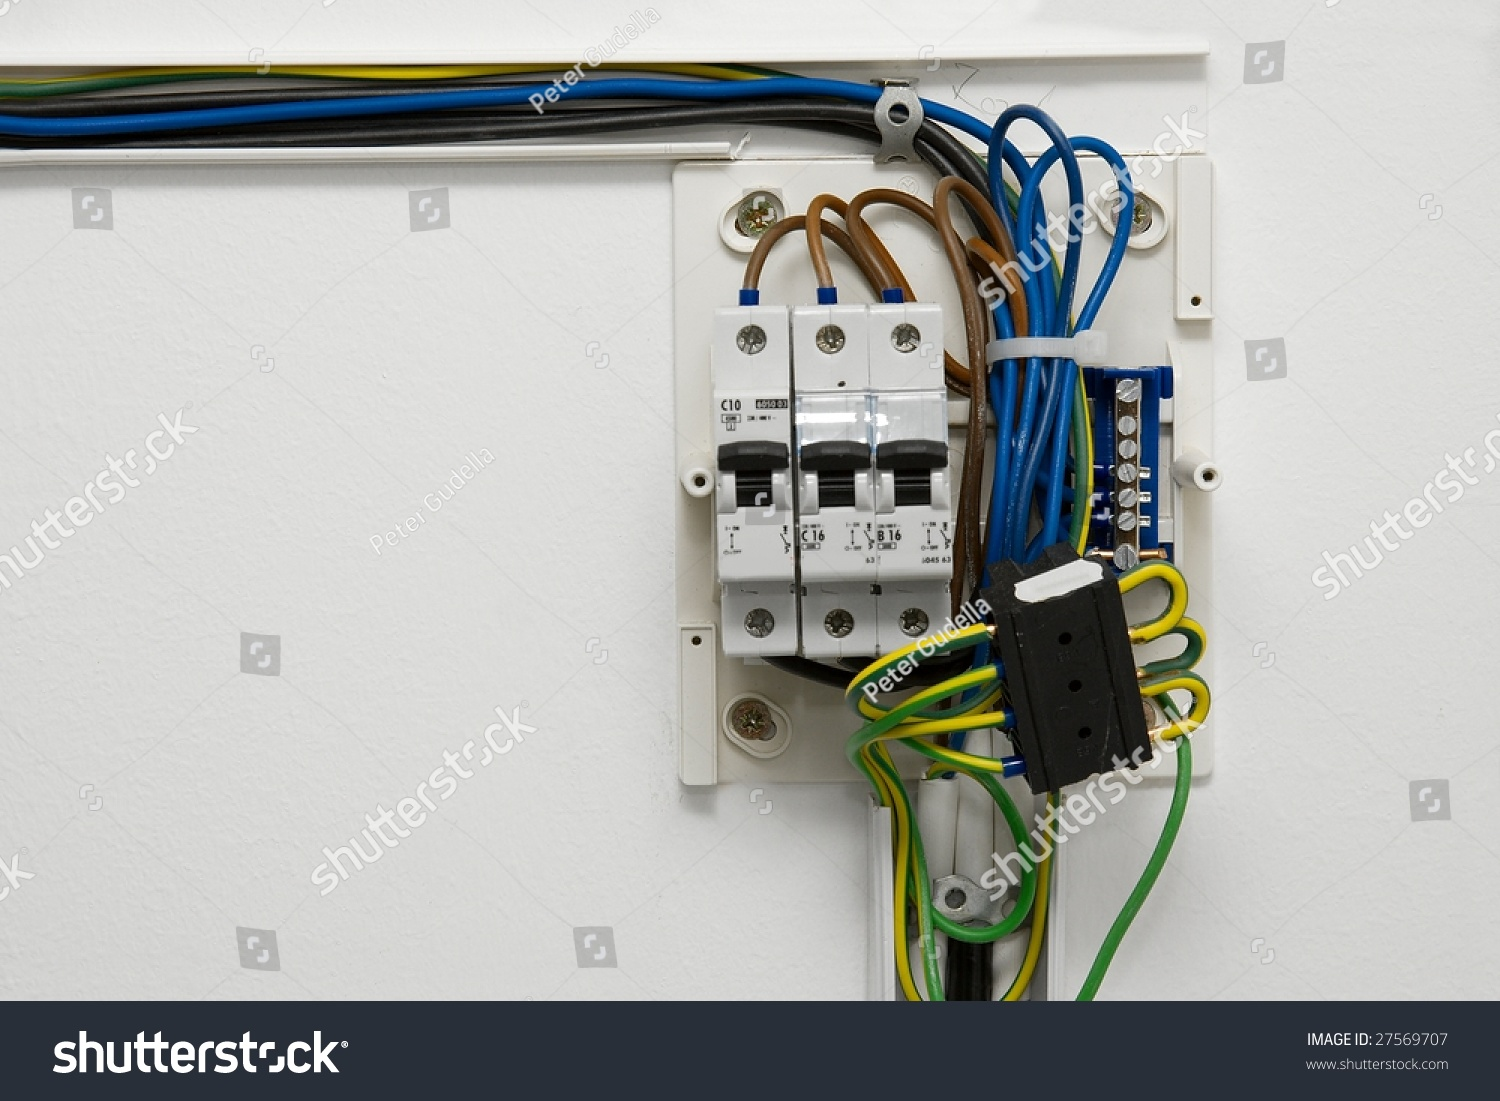 Electric Wiring Fusebox House Stock Photo (Edit Now) 27569707 ...